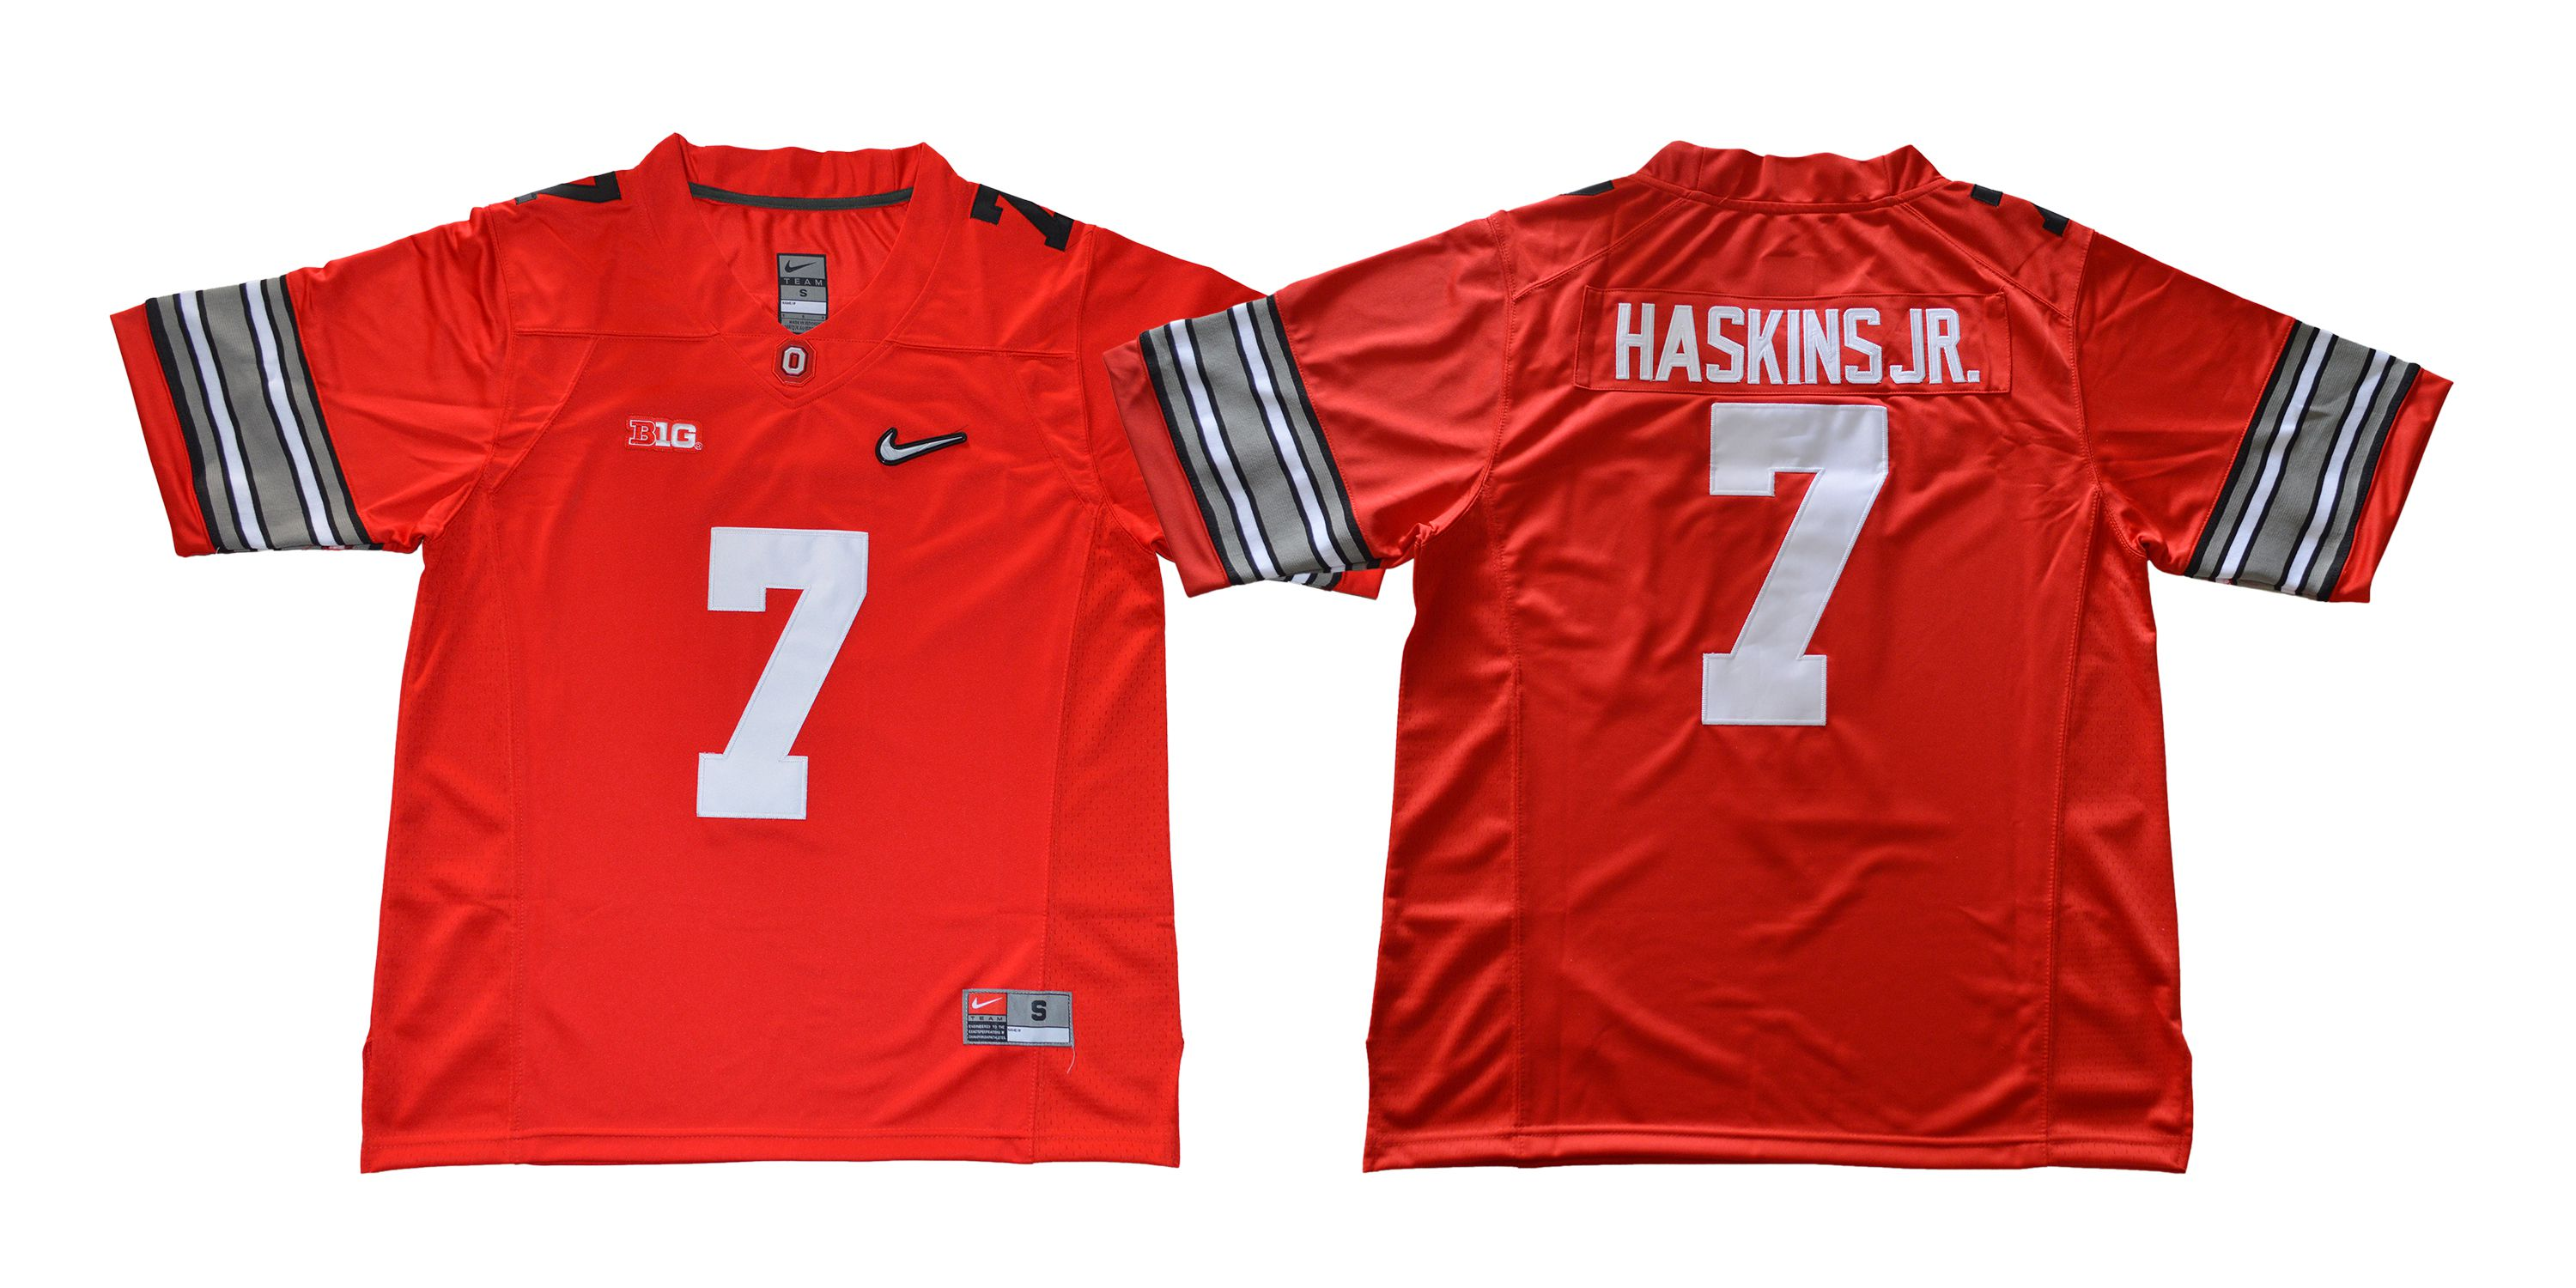 Men Ohio State Buckeyes 7 Haskins jr Diamond Red Nike NCAA Jerseys